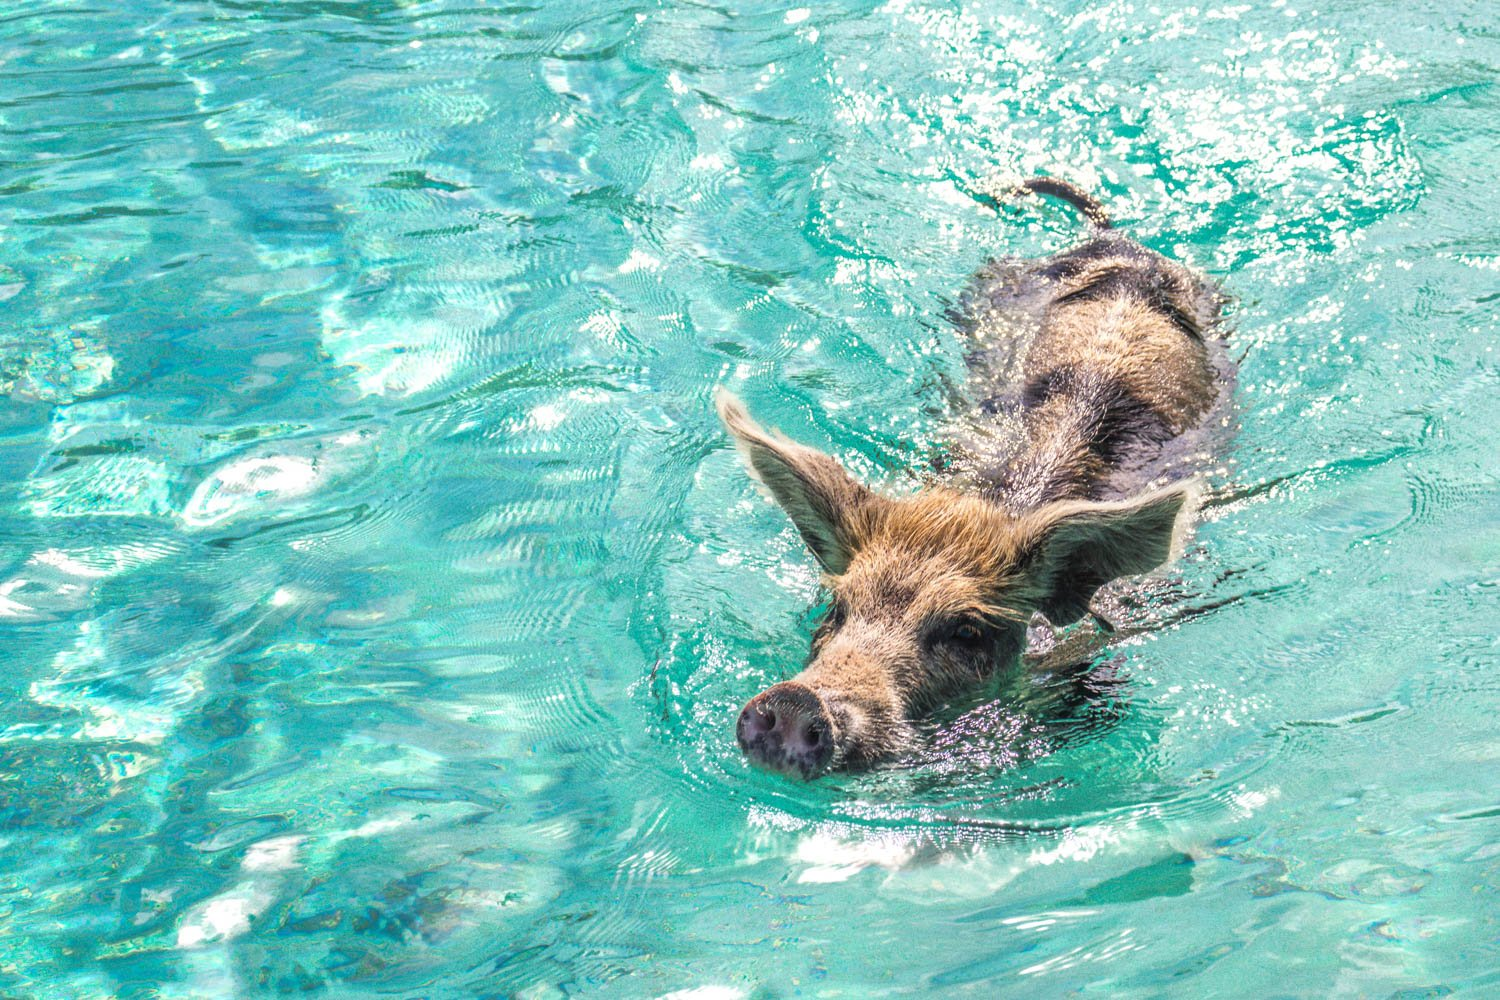 Bahamas day trips are becoming popular things to do in South Florida. Florida to swimming pigs is just a short flight.